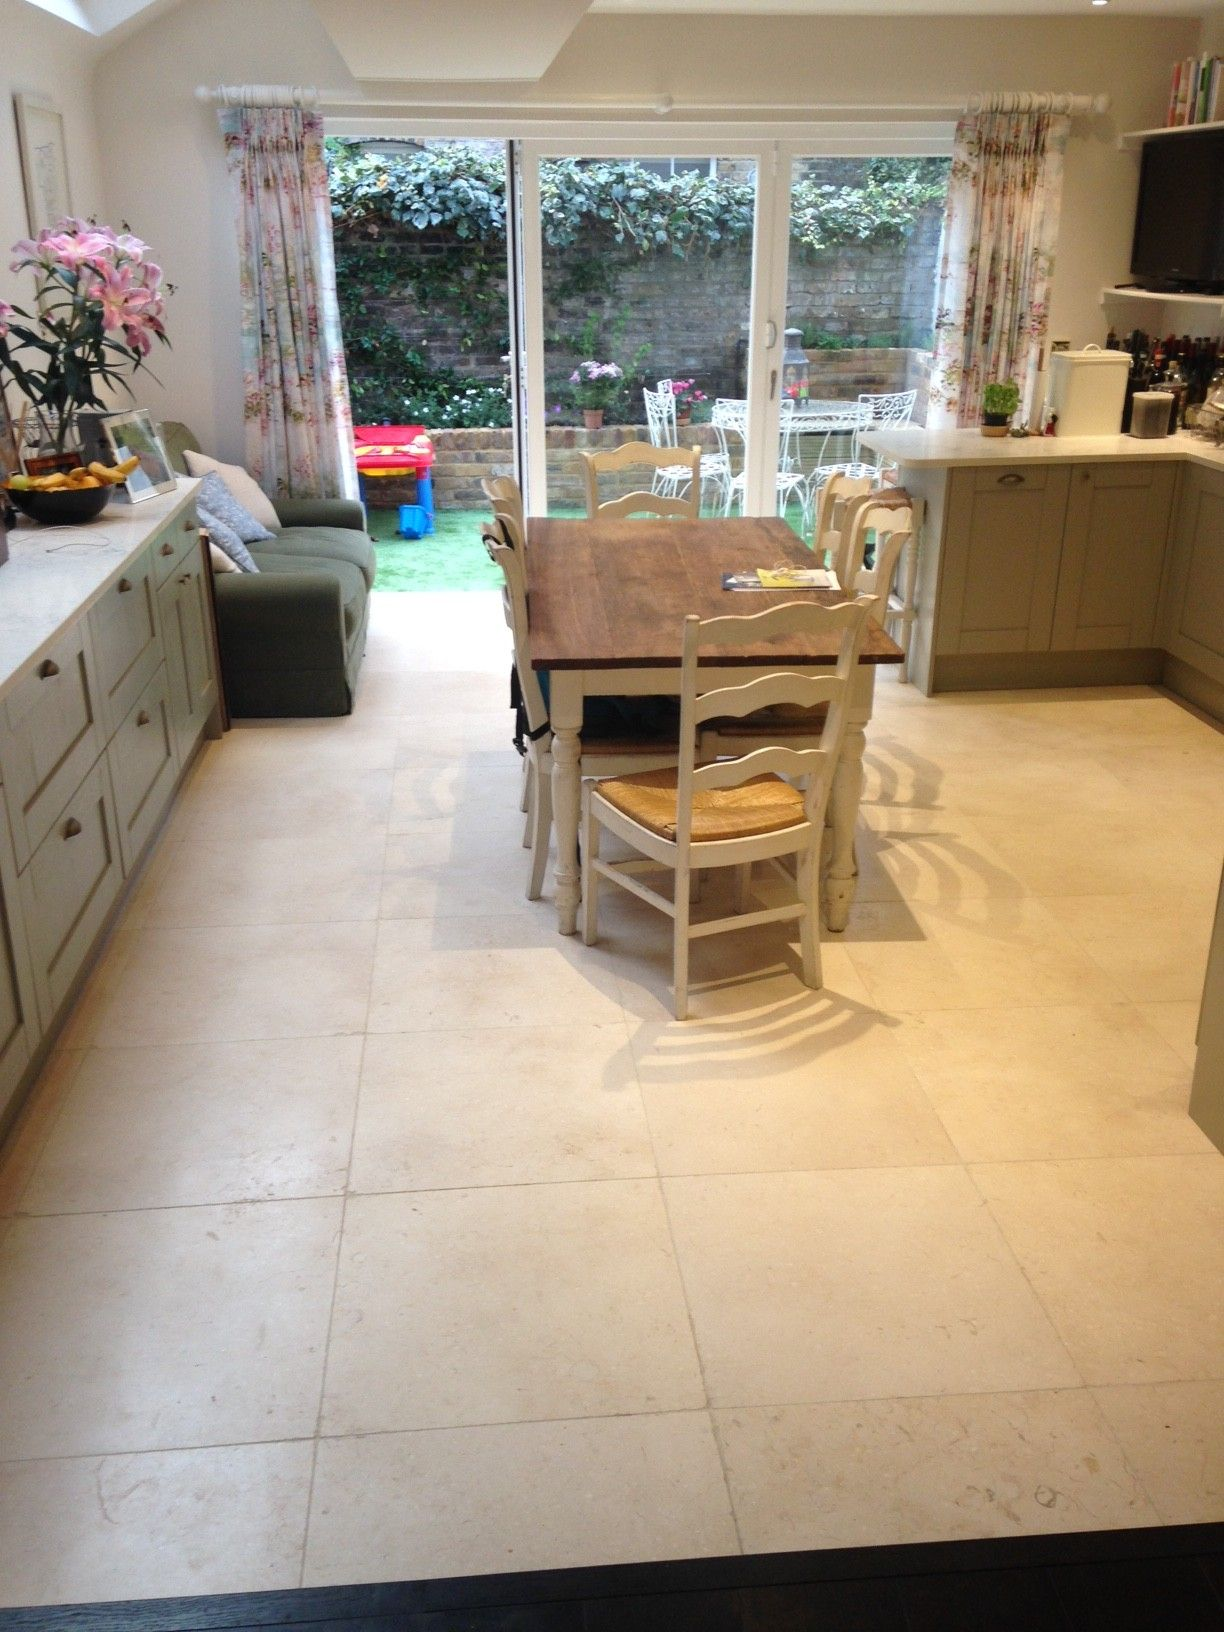 Limestone Kitchen Floor Tiles Light Jerusalem Tumbled Limestone Laid In A 600x600 Size On This